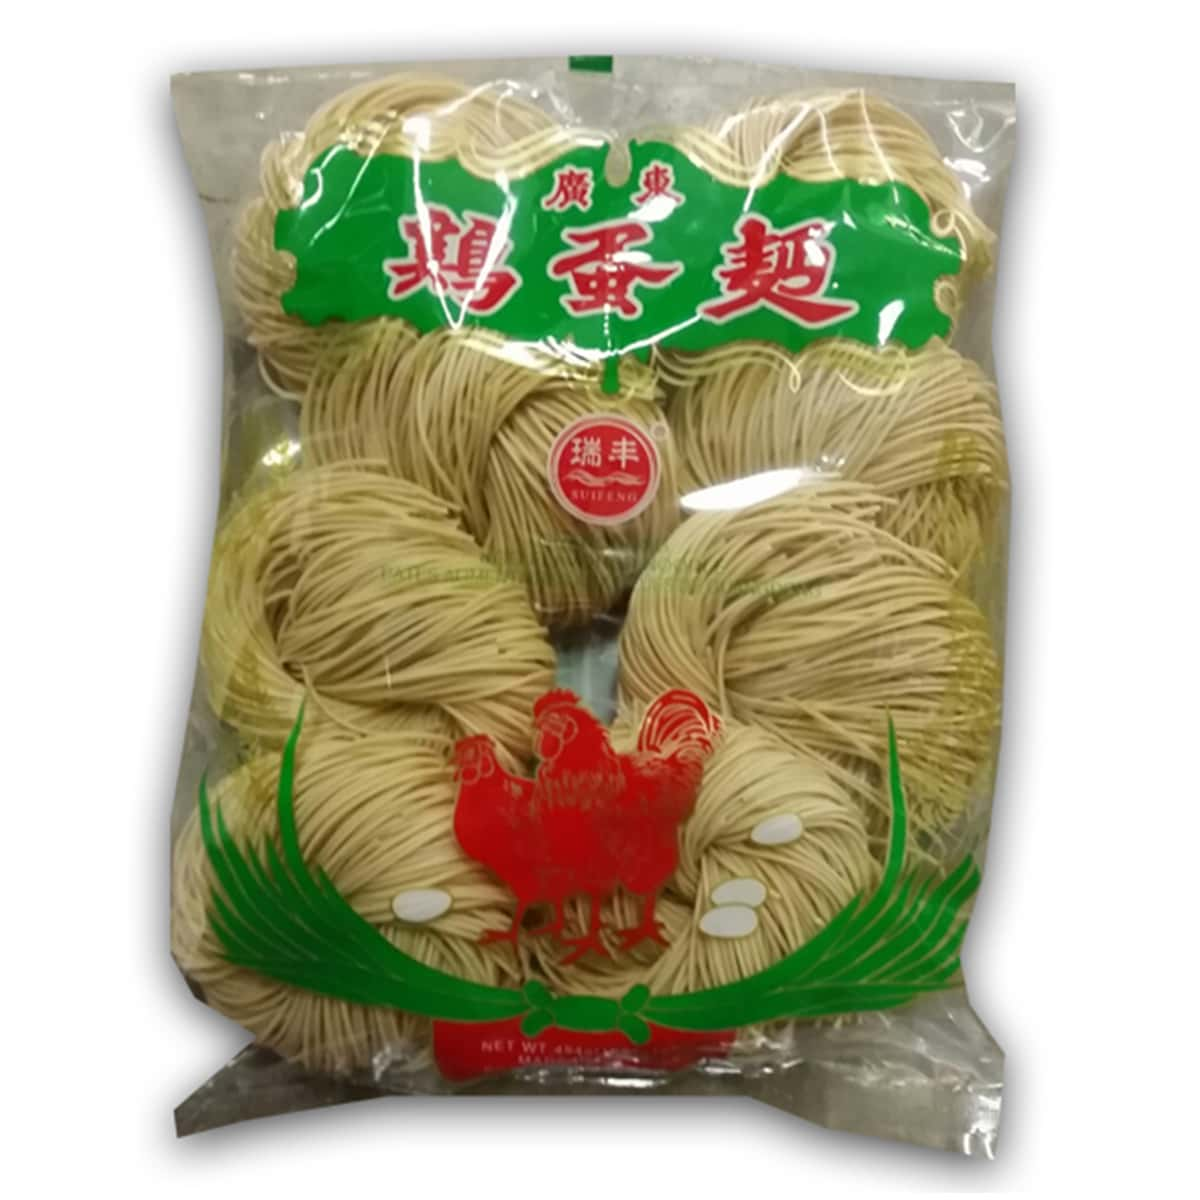 Buy SUI FENG Dried Egg Noodle - 464 gm